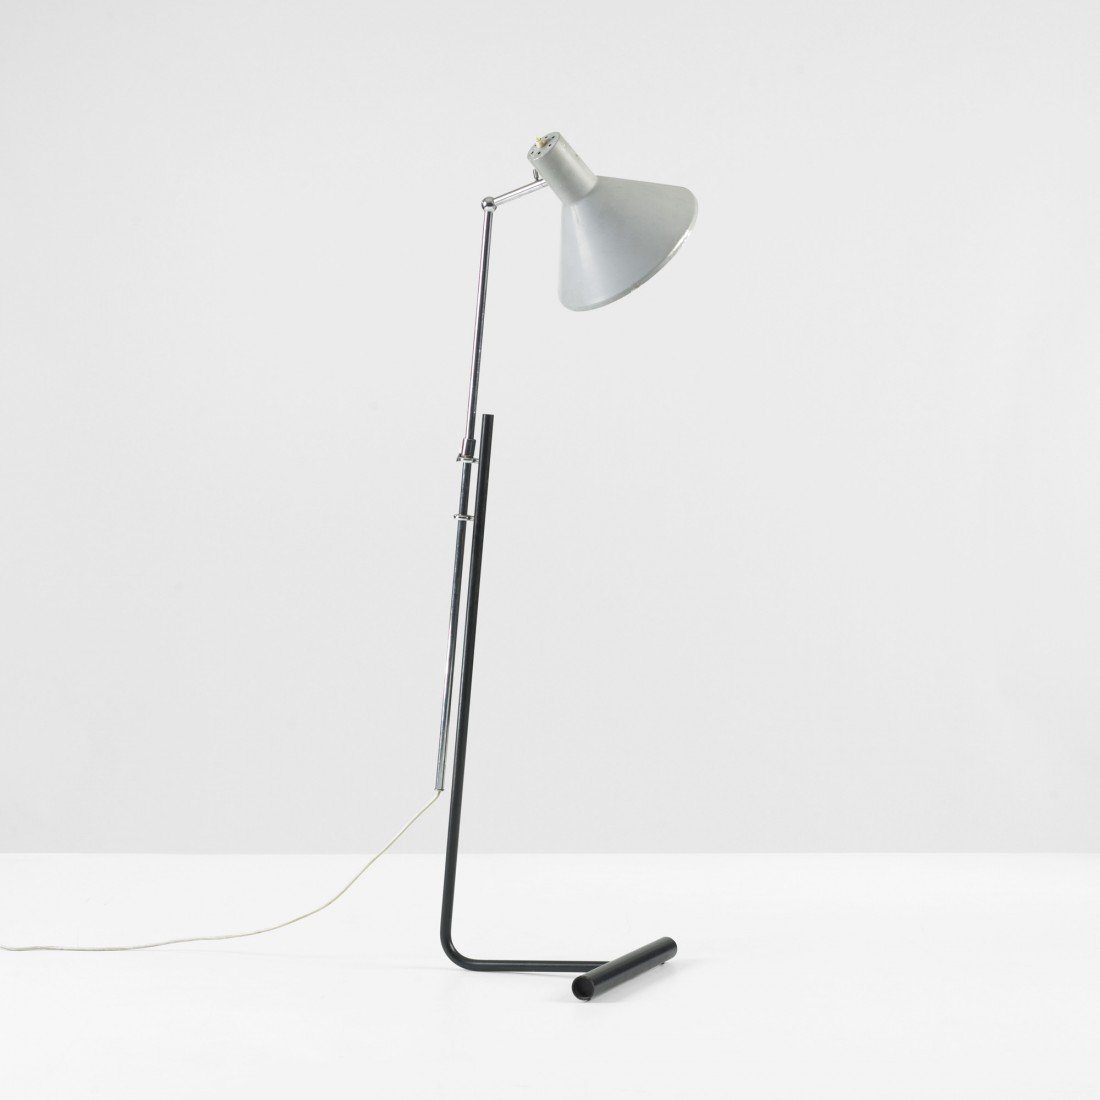 471: Gino Sarfatti adjustable floor lamp